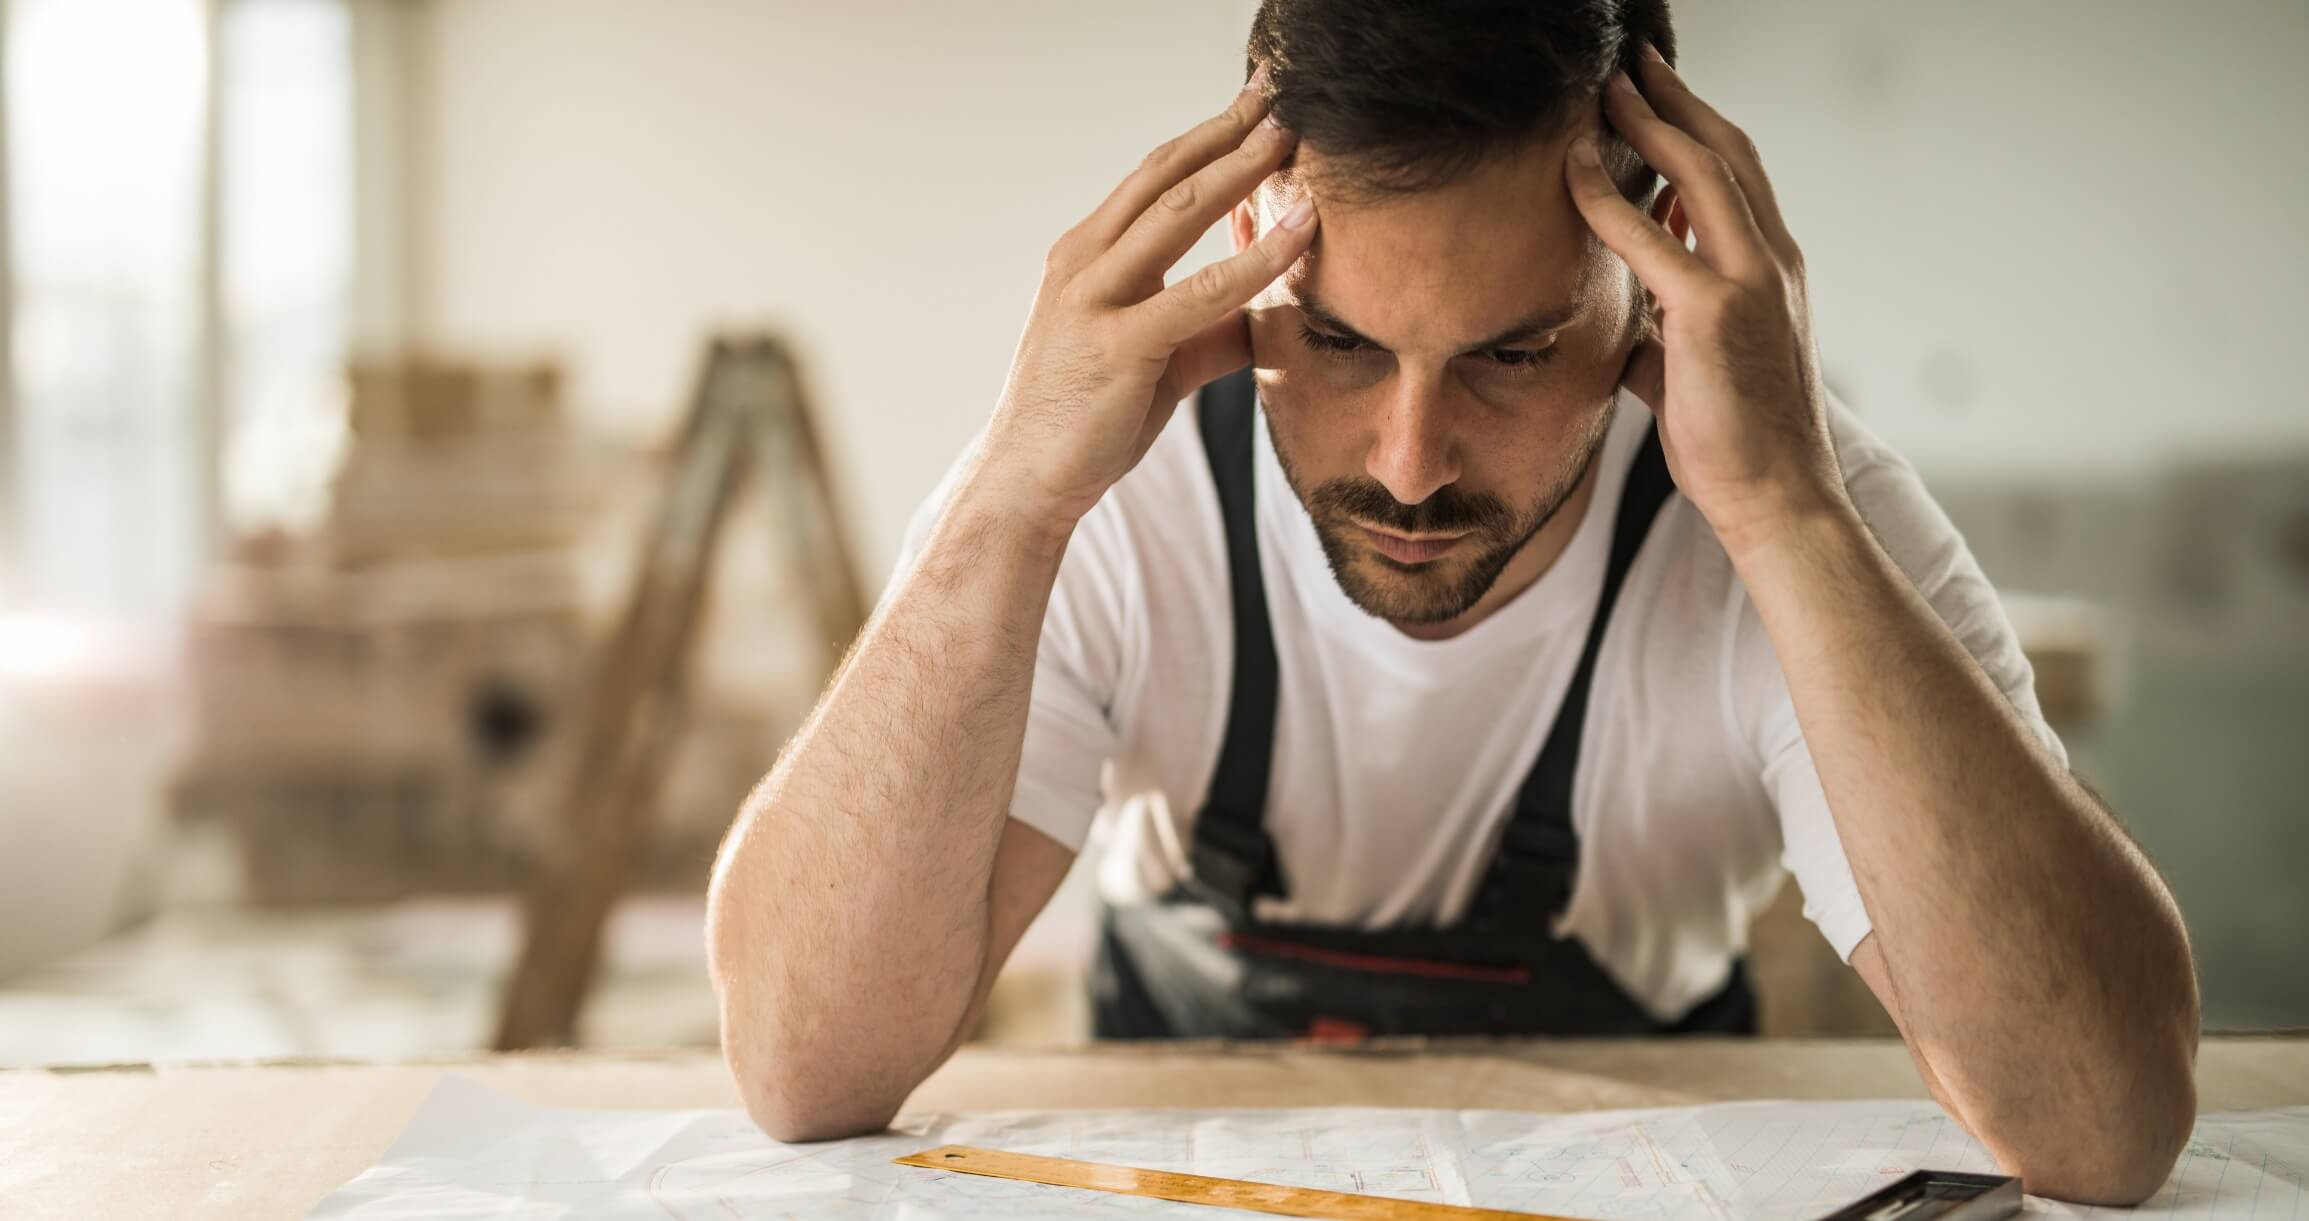 Home Renovation Stress? 6 Tips To Stay Sane